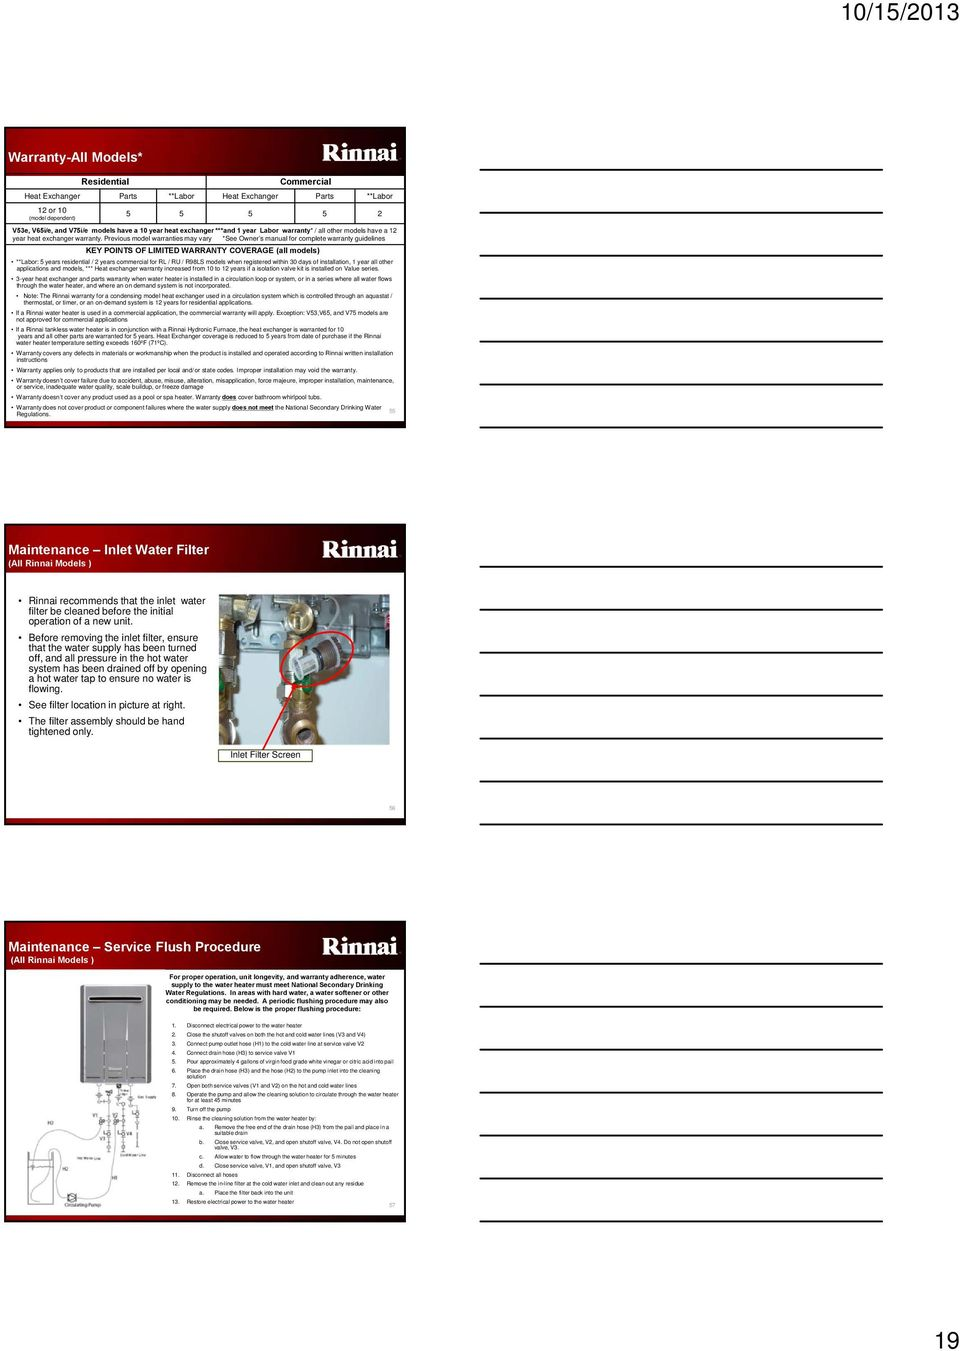 10 15 2013 Tankless Water Heater Training Program Product Knowledge Rinnai Schematics Previous Model Warranties May Vary See Owner S Manual For Complete Warranty Guidelines Key Points